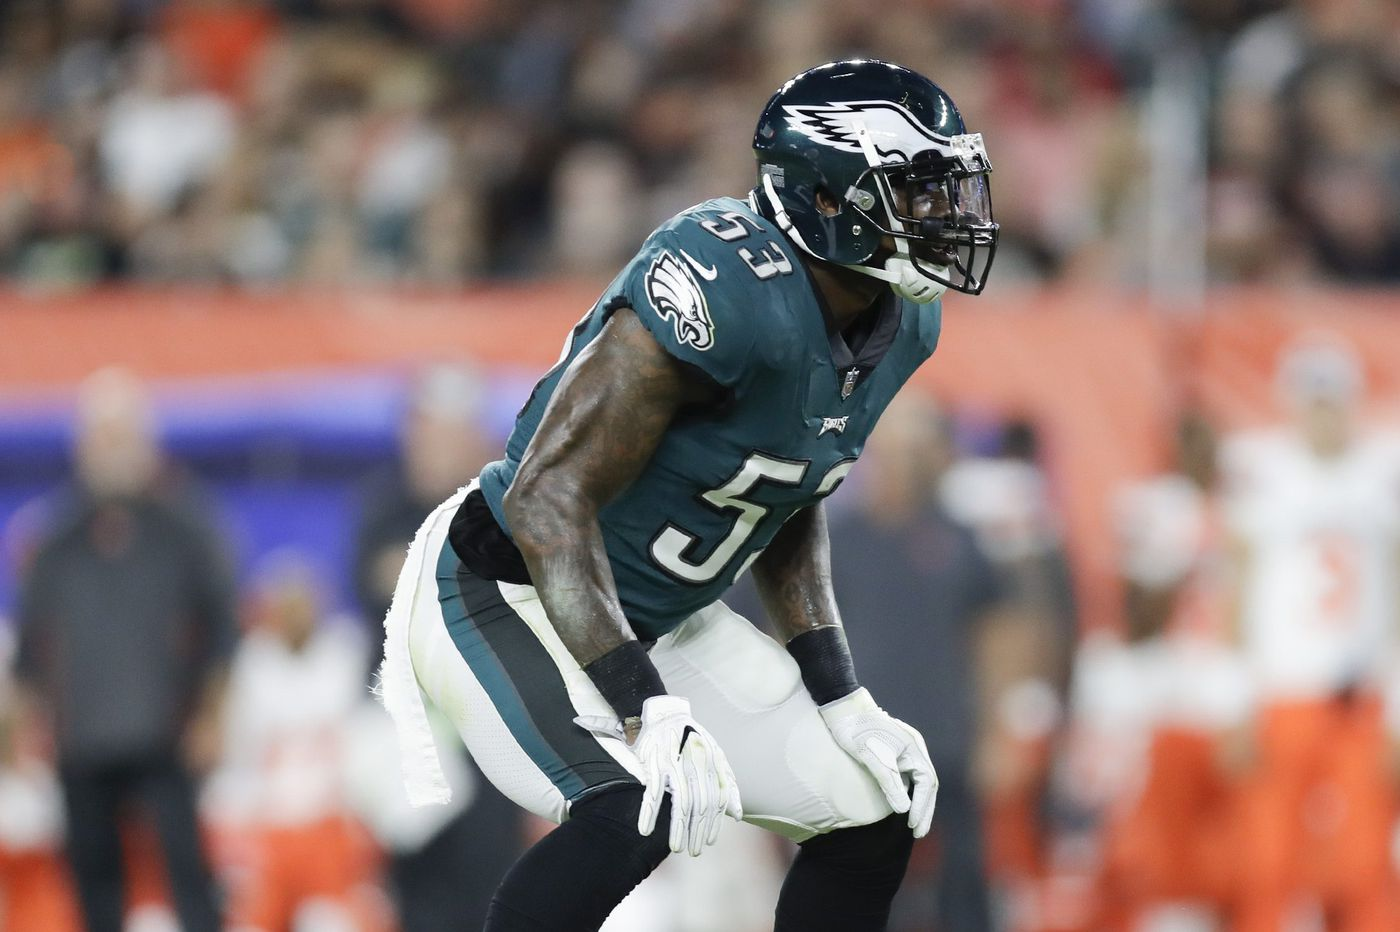 Eagles turn to Week 1 vs. Atlanta Falcons without suspended linebacker Nigel Bradham